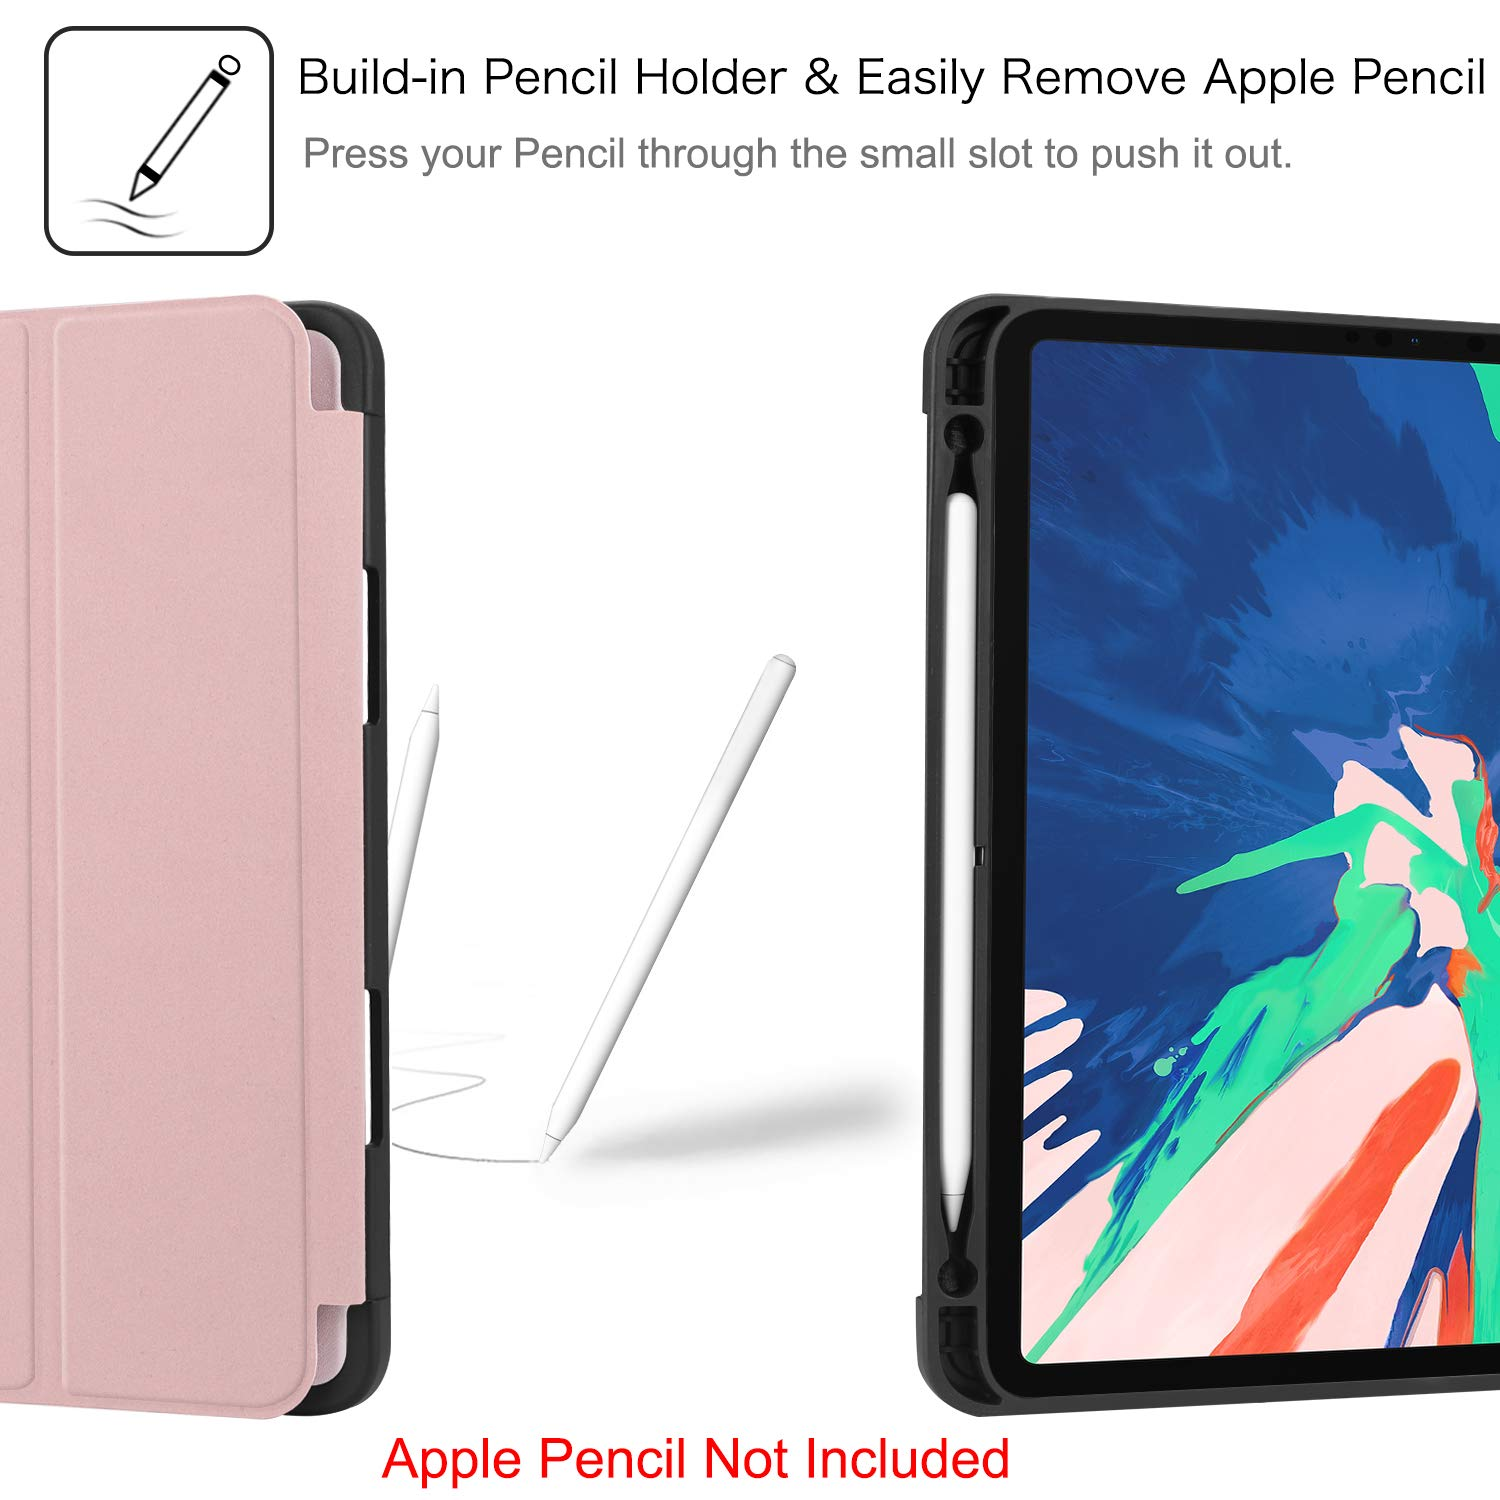 Auto Wake//Sleep - SlimShell Lightweight Soft TPU Back Protective Stand Cover FINTIE Case with Built-in Pencil Holder for iPad Pro 11 2018 Black Supports Pencil 2nd Gen Charging Mode